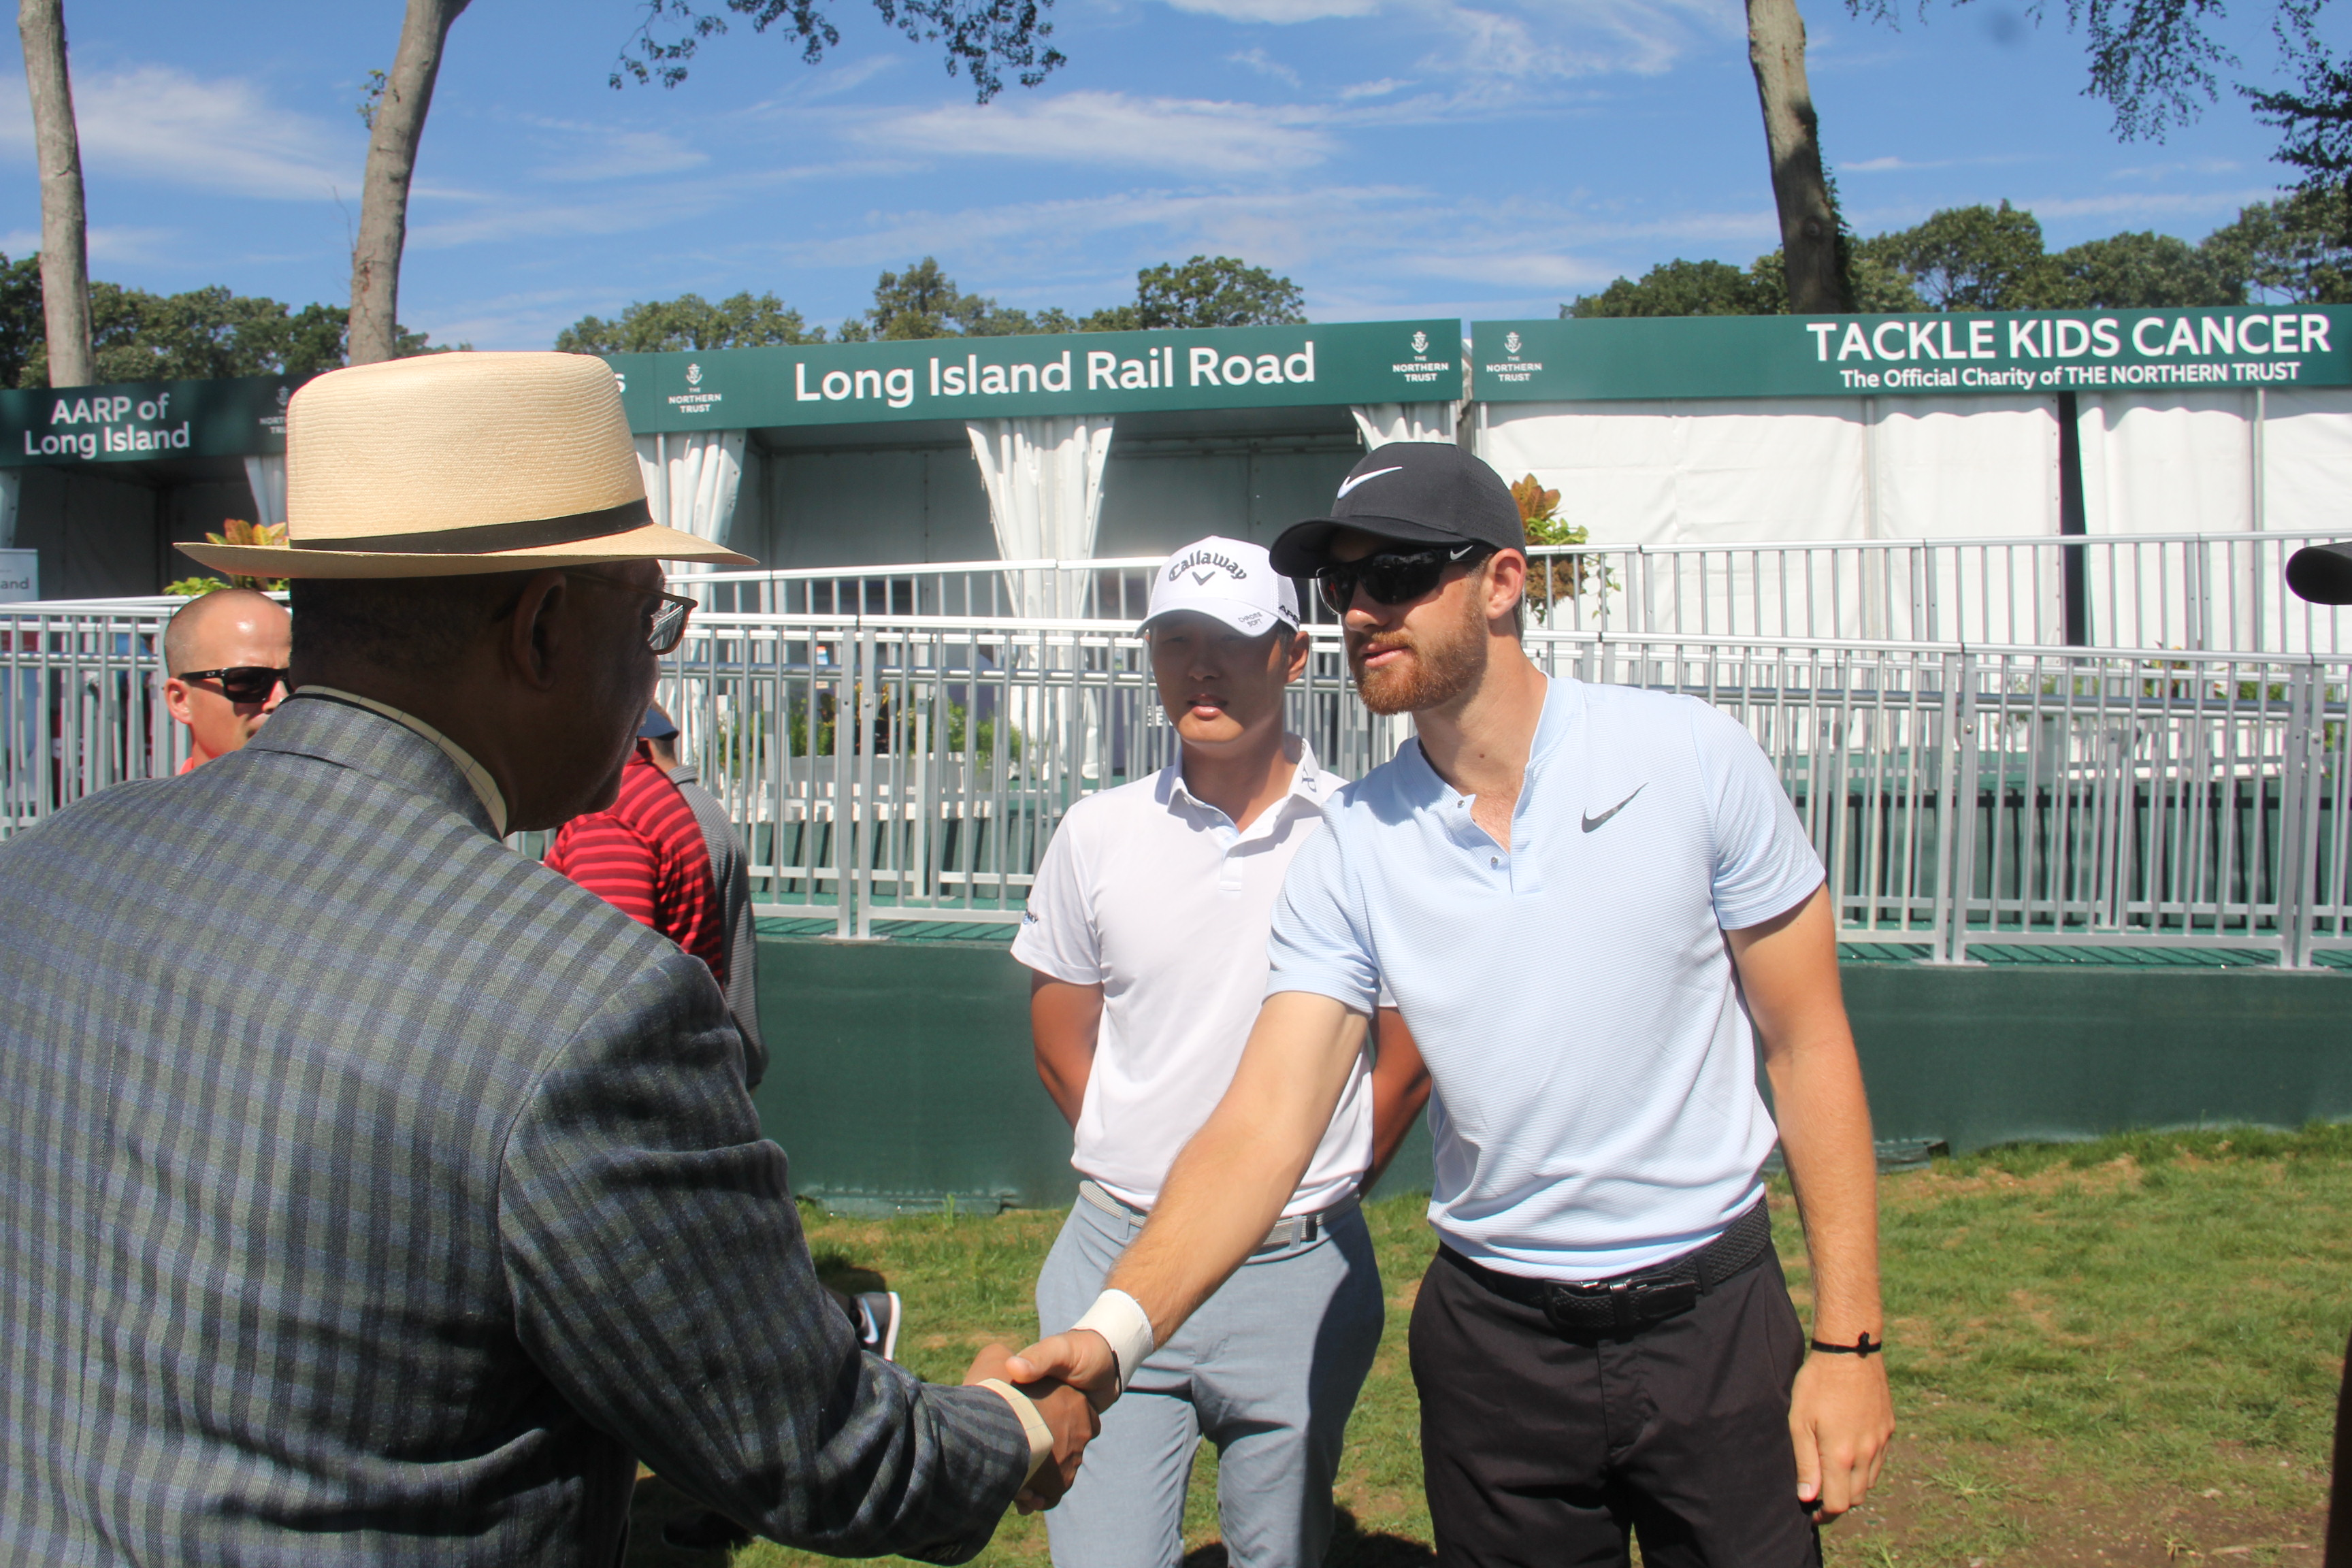 President Butts shakes hands with two PGA players